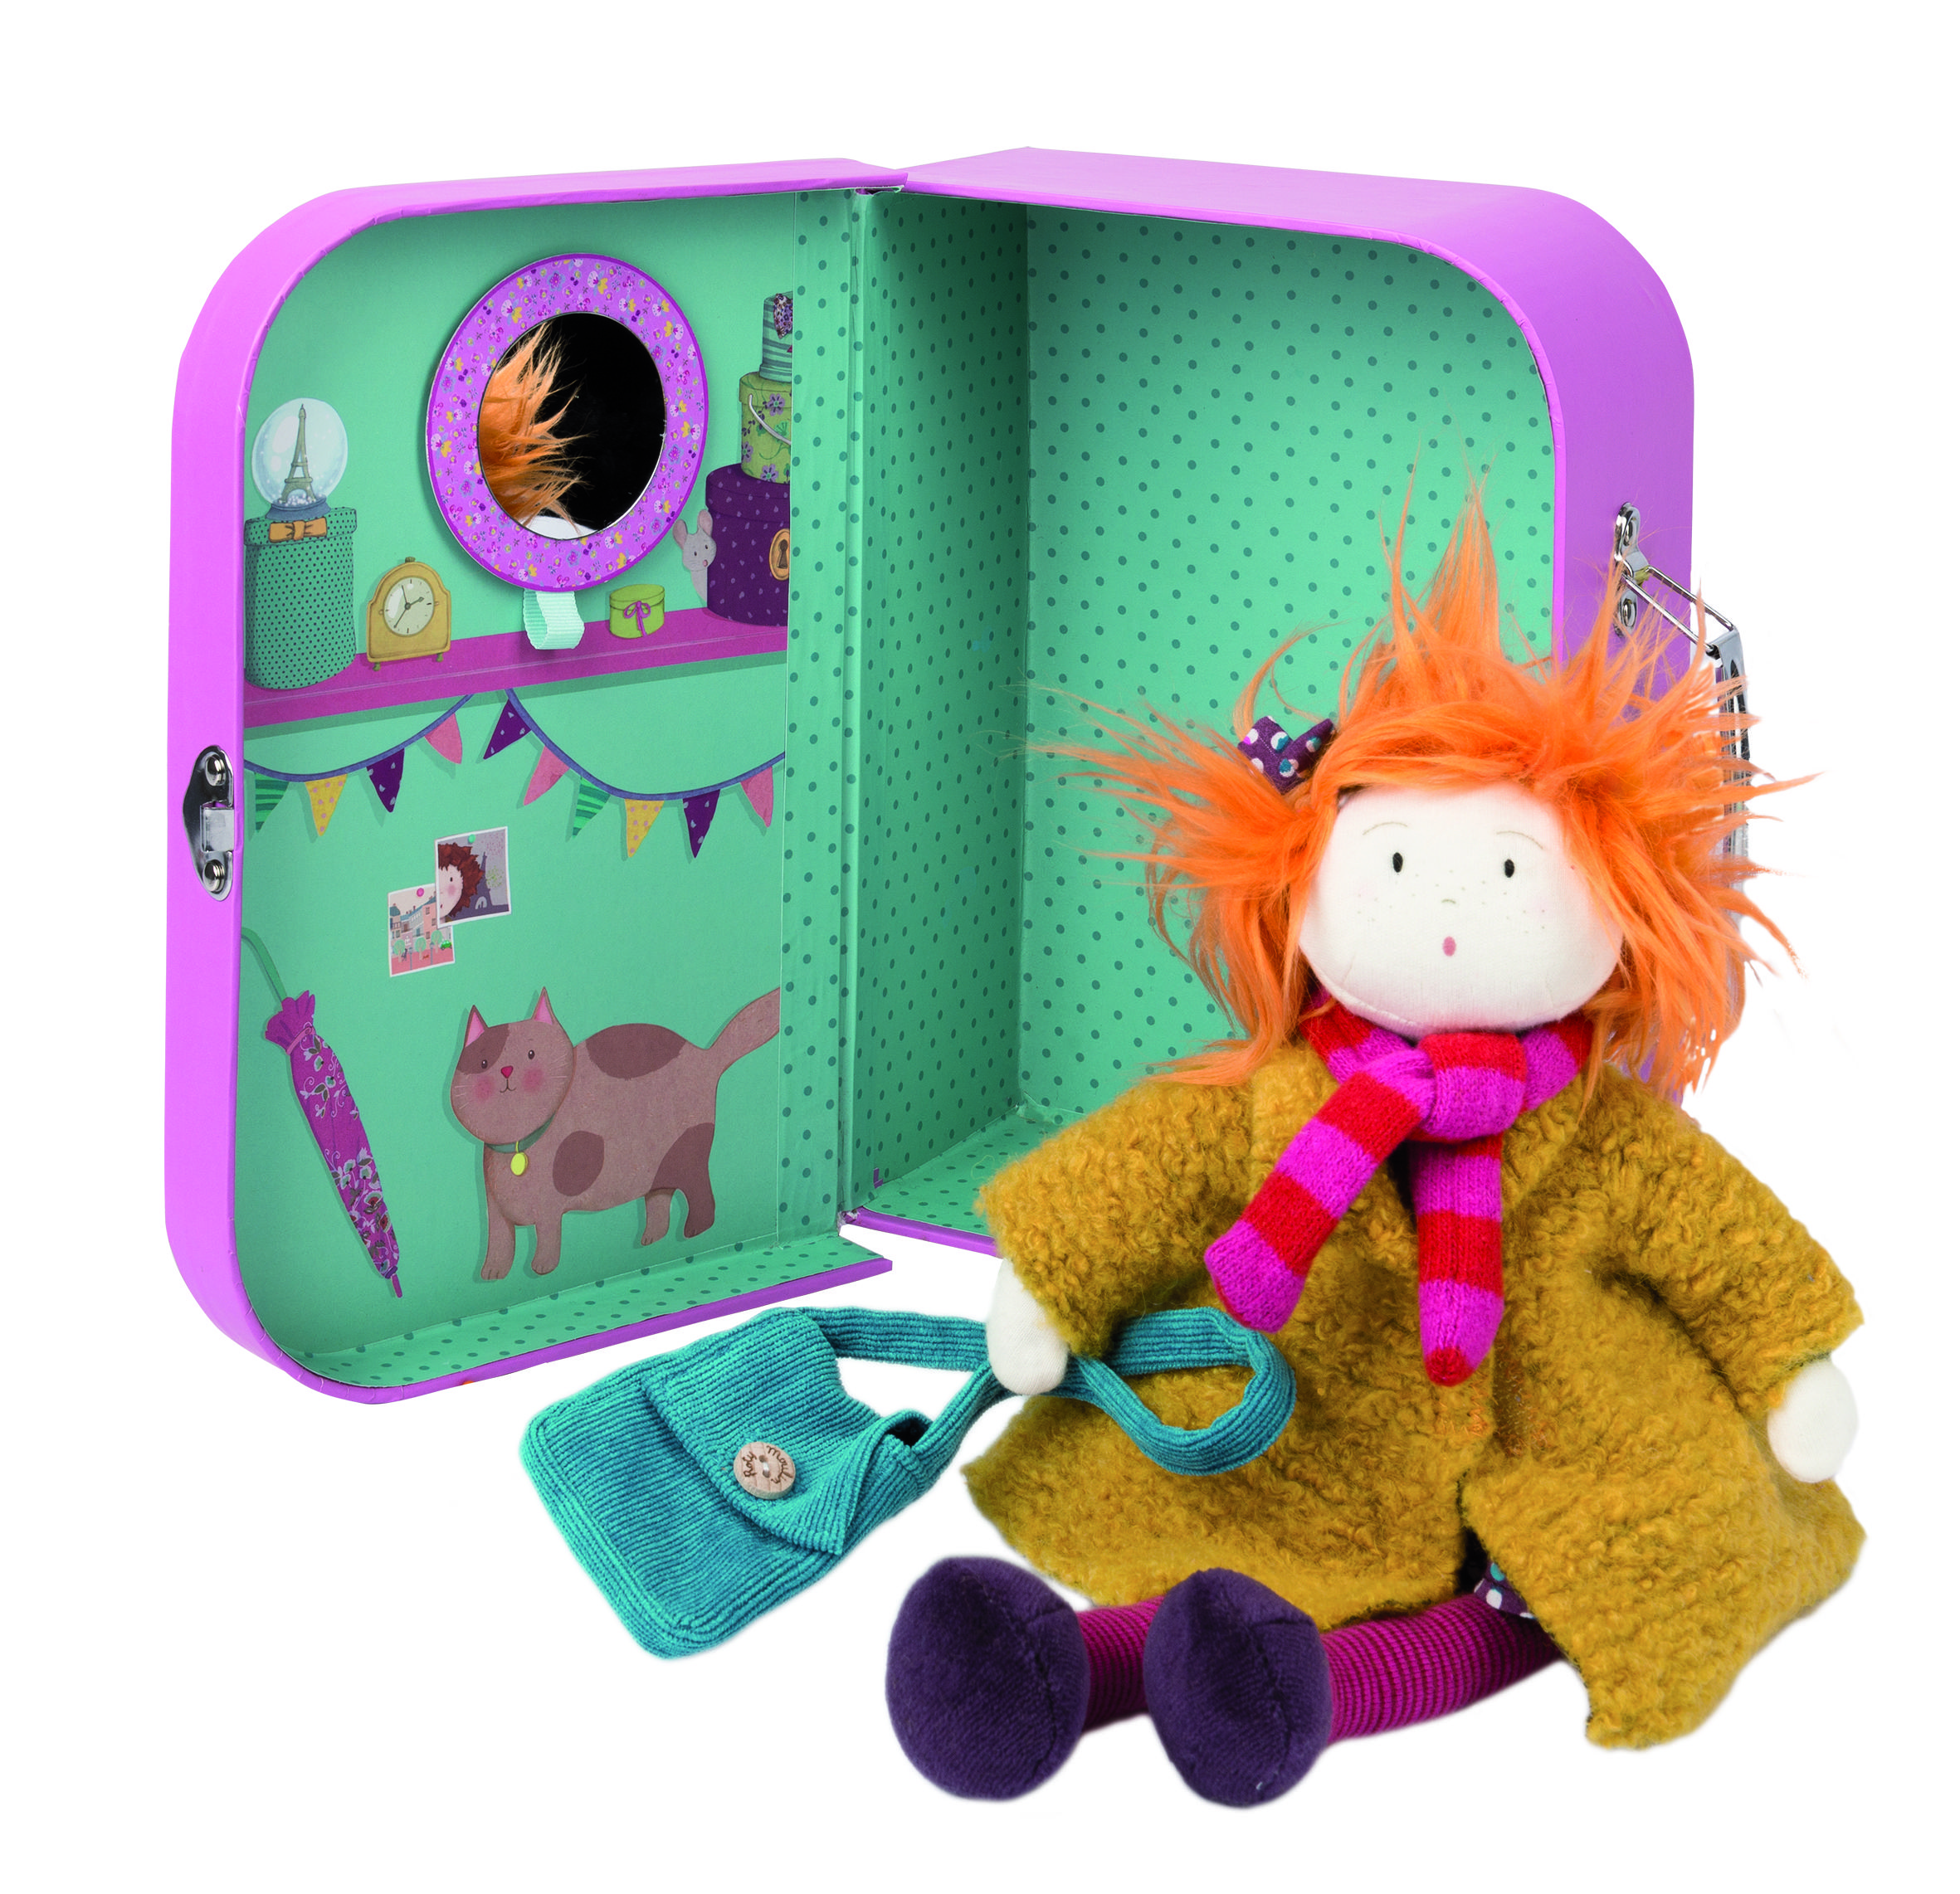 Marinette et sa Valisette from Les Coquettes #710499 #magicforesttoys #moulinroty